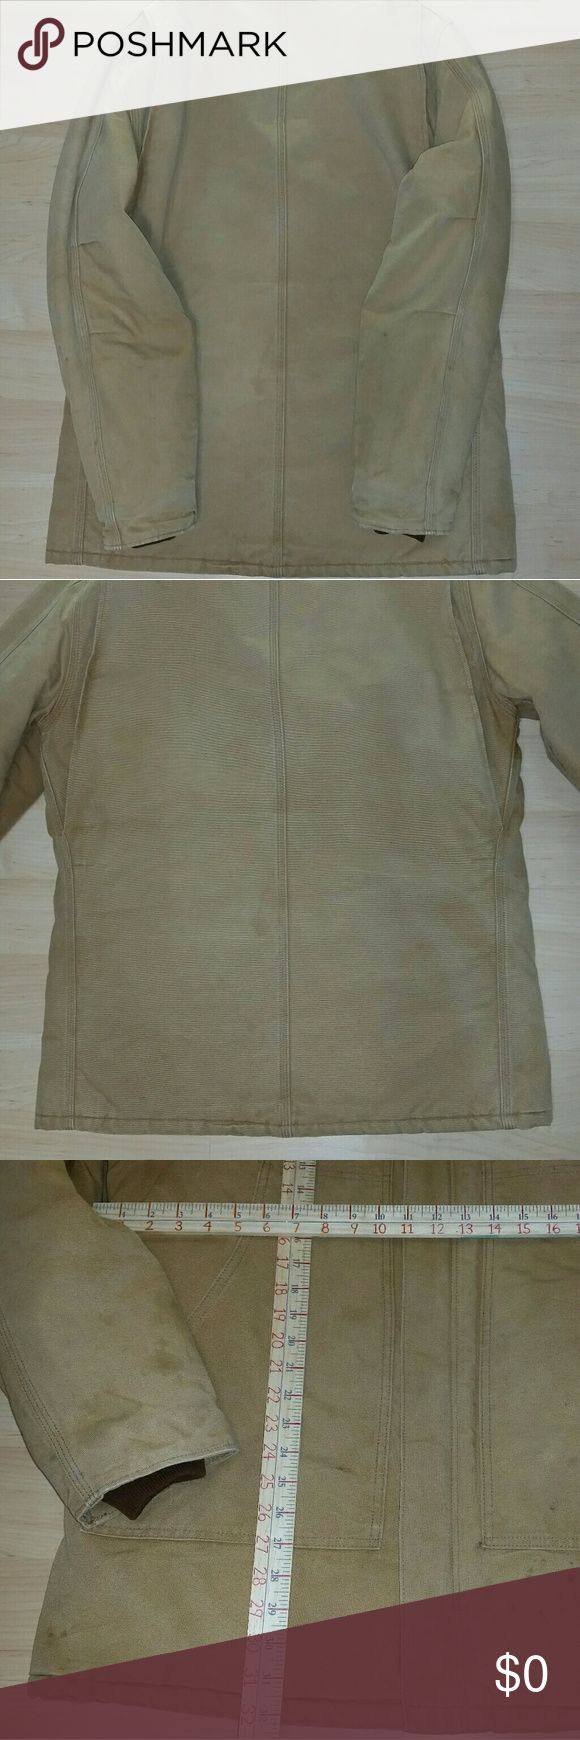 More pictures of Carhartt coat See other listing to purchase.... Coat has been well laundered clean & ready-to-wear... From a smoke-free home... See pictures for measurements as well... Carhartt  Jackets & Coats